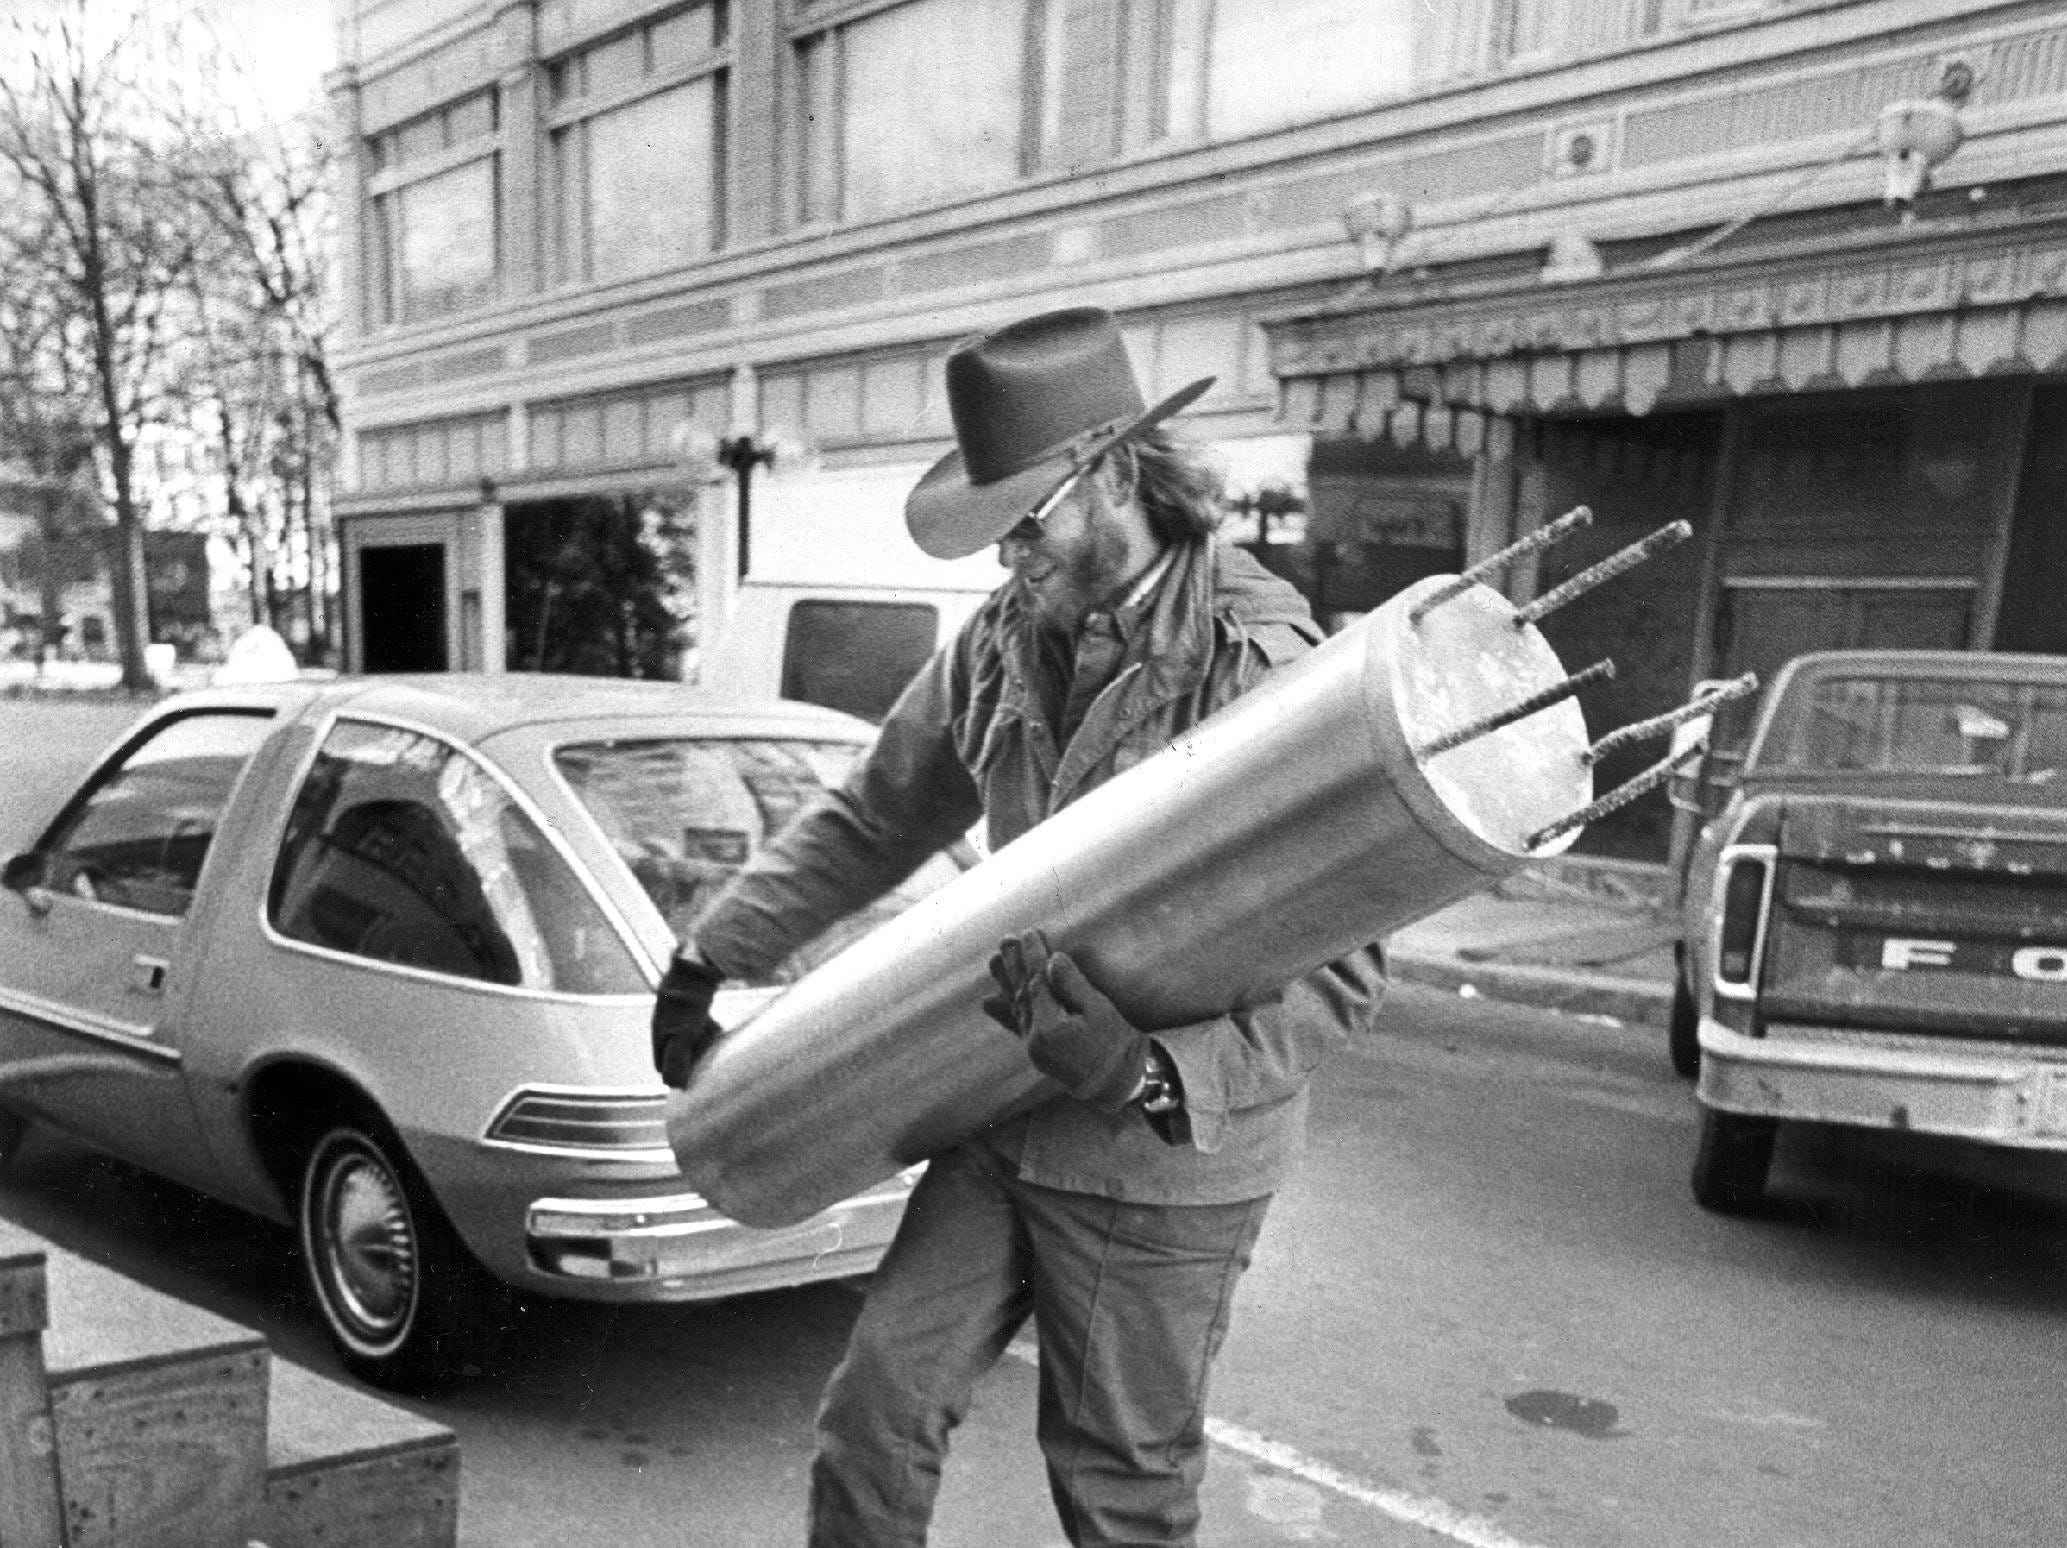 Larry Rush, of Rush Engineering, the company that built the Mid-America Mall, carries a Sesquicentennial time capsule near the Exchange Building and Court Square on 20 Dec 1976.  The capsule had been planted in the Civic Center Plaza in 1969 and was to have been opened in time for the city's bicentennial observance in 2019.  It had been removed when construction began on the Mid-America Mall and had been missing for about six months when it turned up at the mall construction office.  The capsule, containing mementos of the sesquicentennial, was to be reset in the completed plaza.